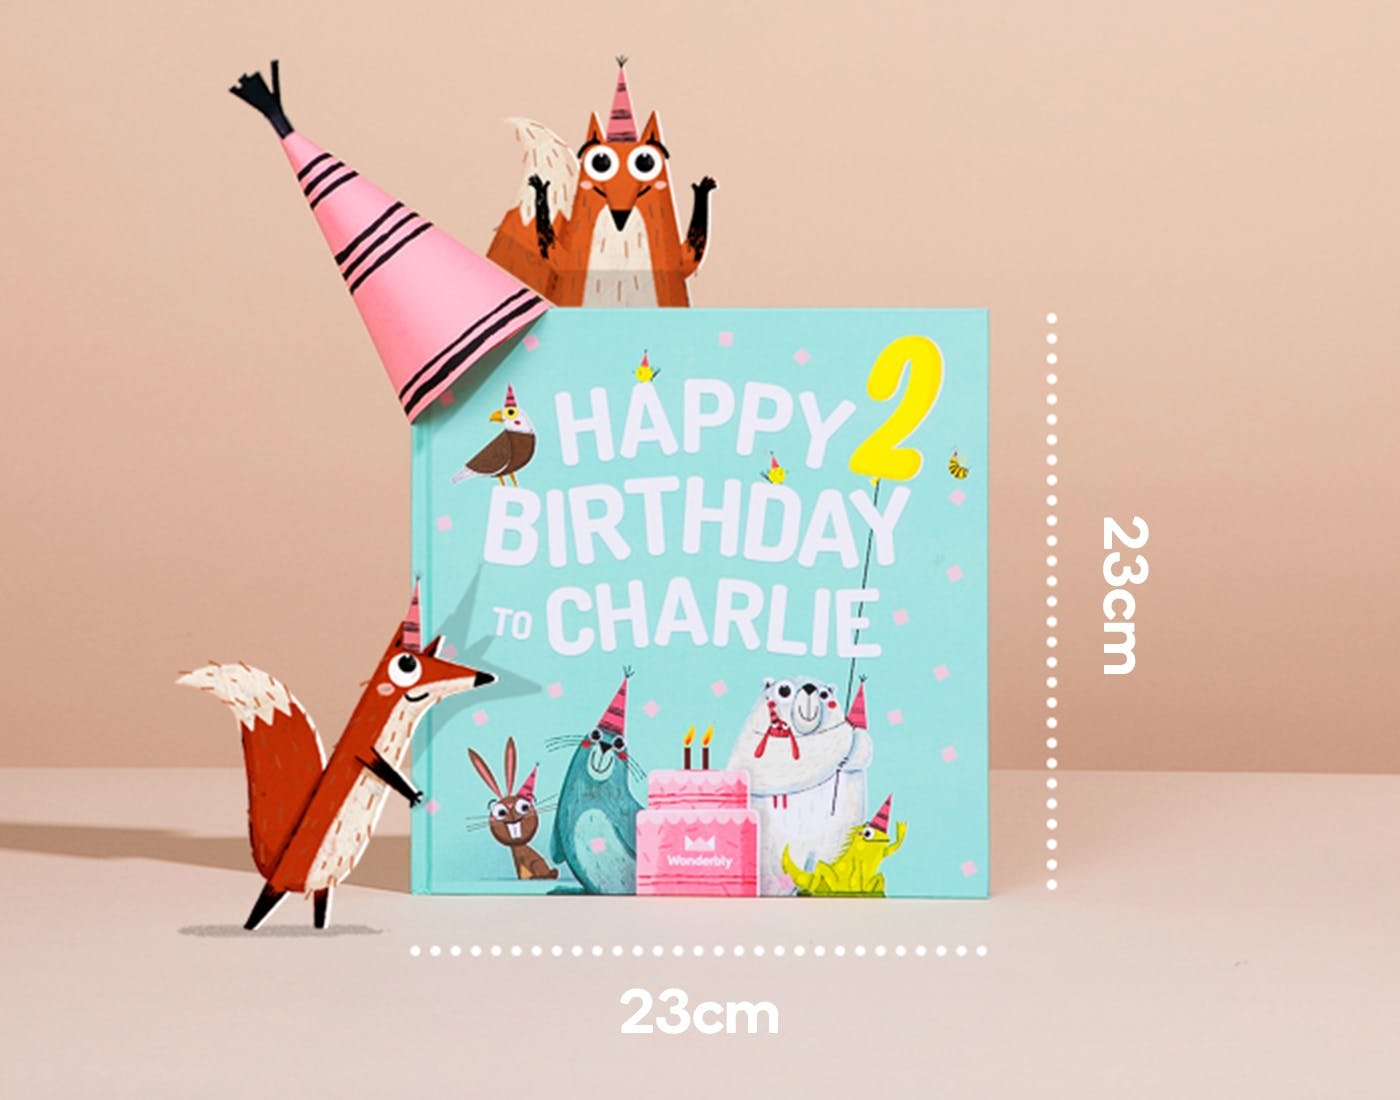 Happy Birthday Mint Cover Uk Dimensions in CM